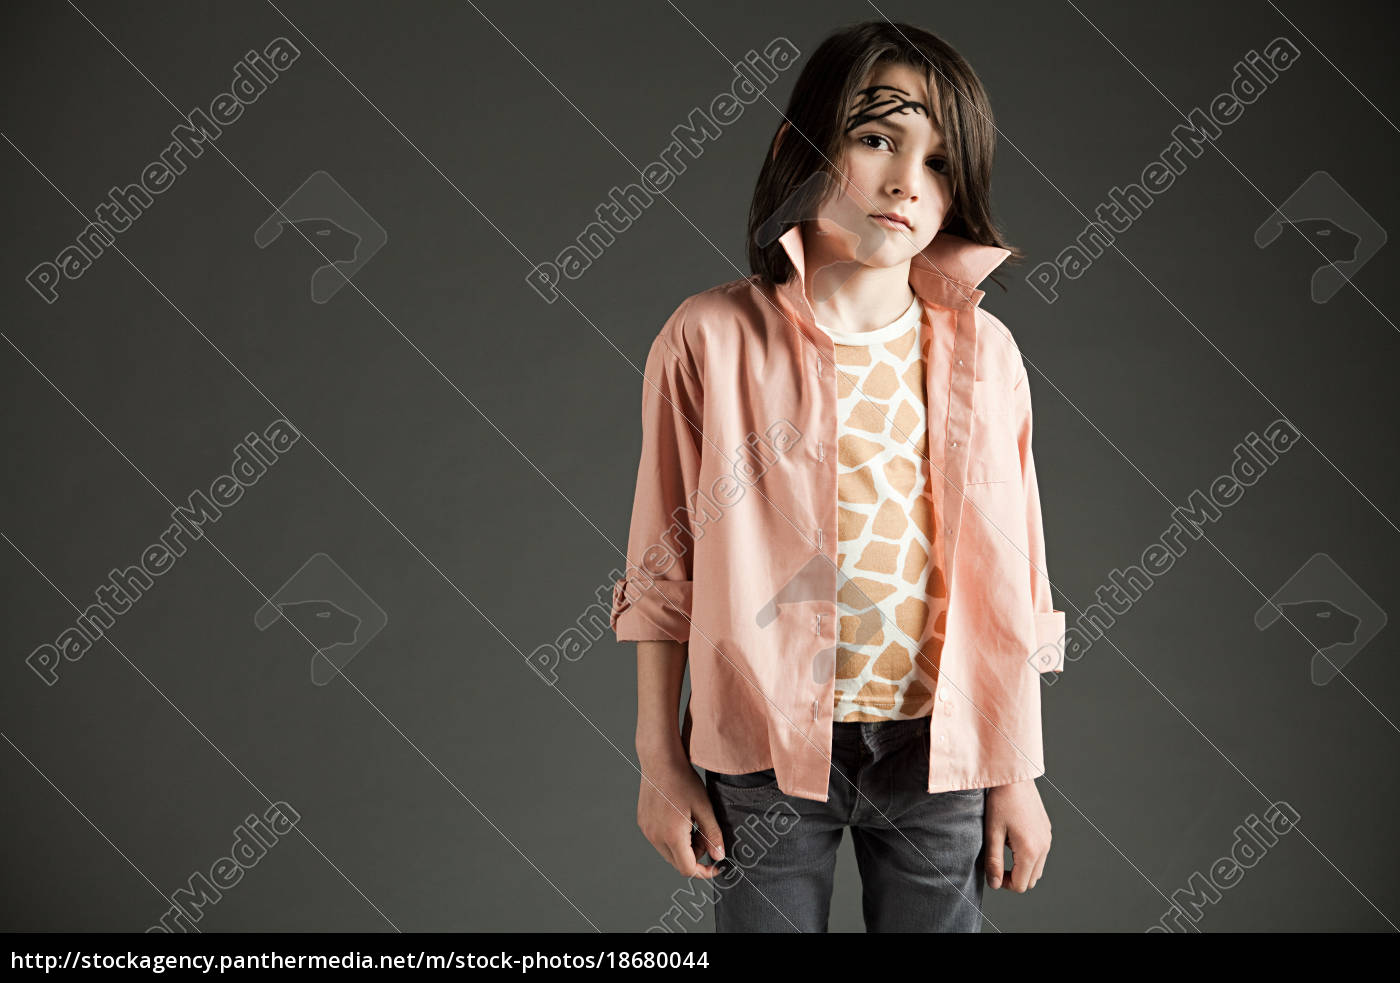 young, boy, wearing, casual, clothes, and - 18680044